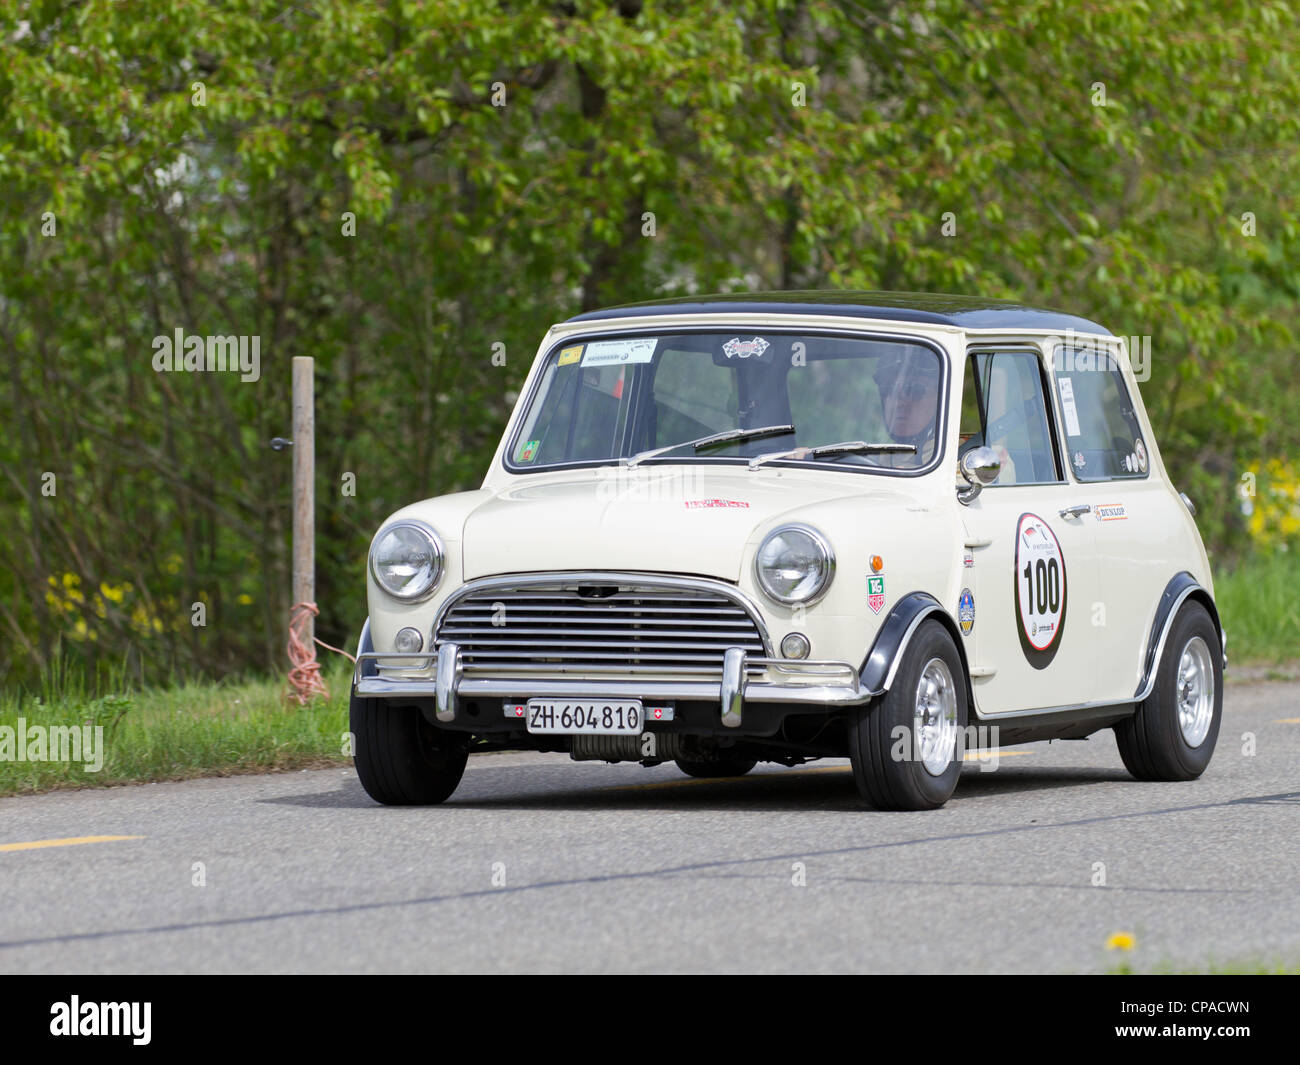 Vintage race touring car Morris Mini Cooper S from 1969 at Grand Prix in Mutschellen, SUI on April 29, 2012. - Stock Image